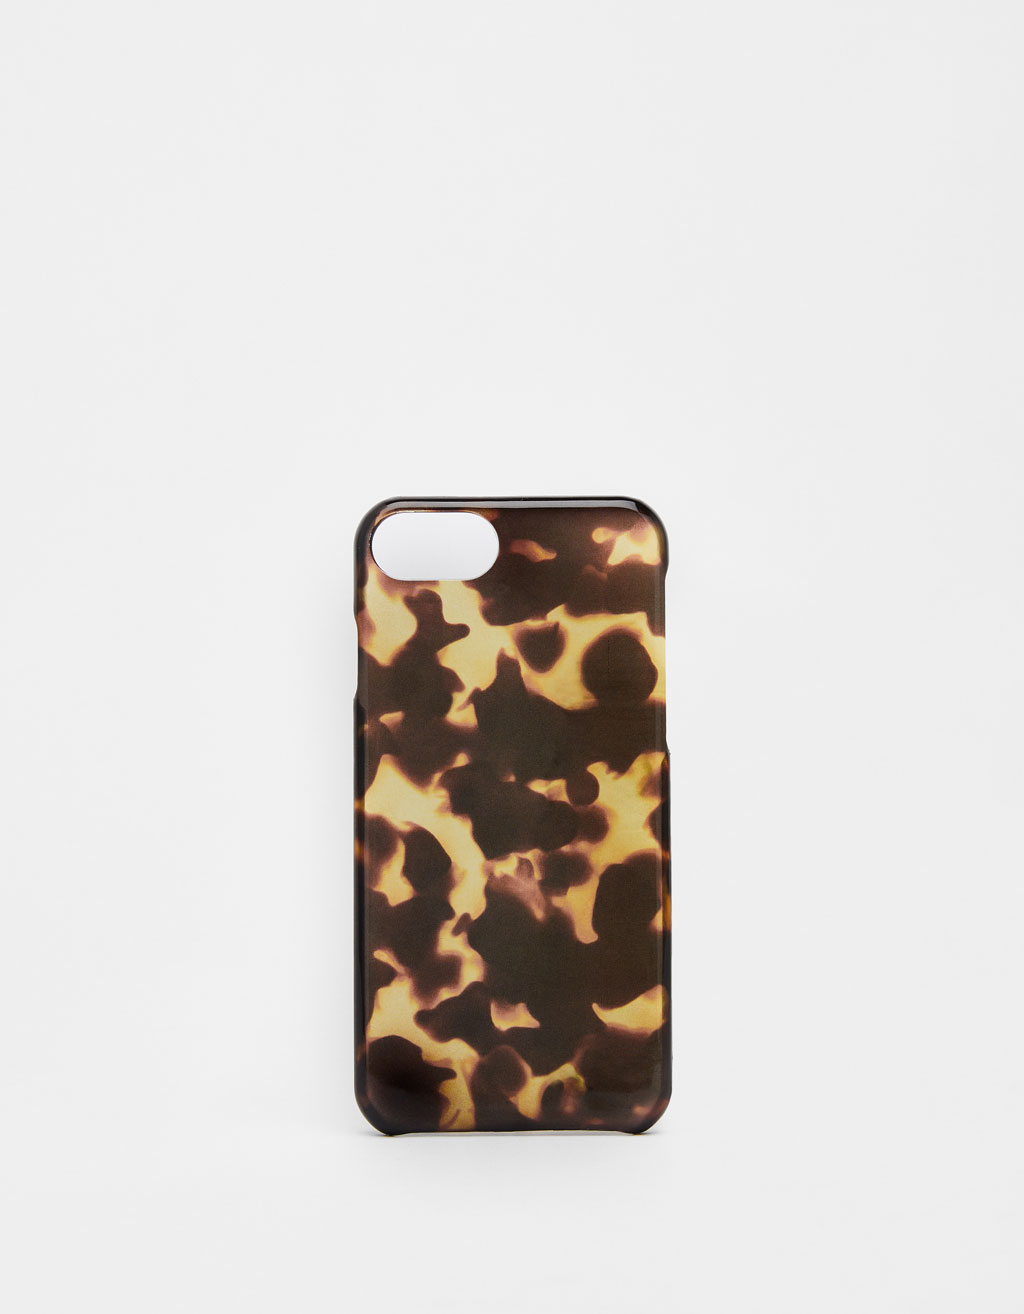 Carcasa carcasa efecto carey iPhone 6 / 6S / 7 / 8